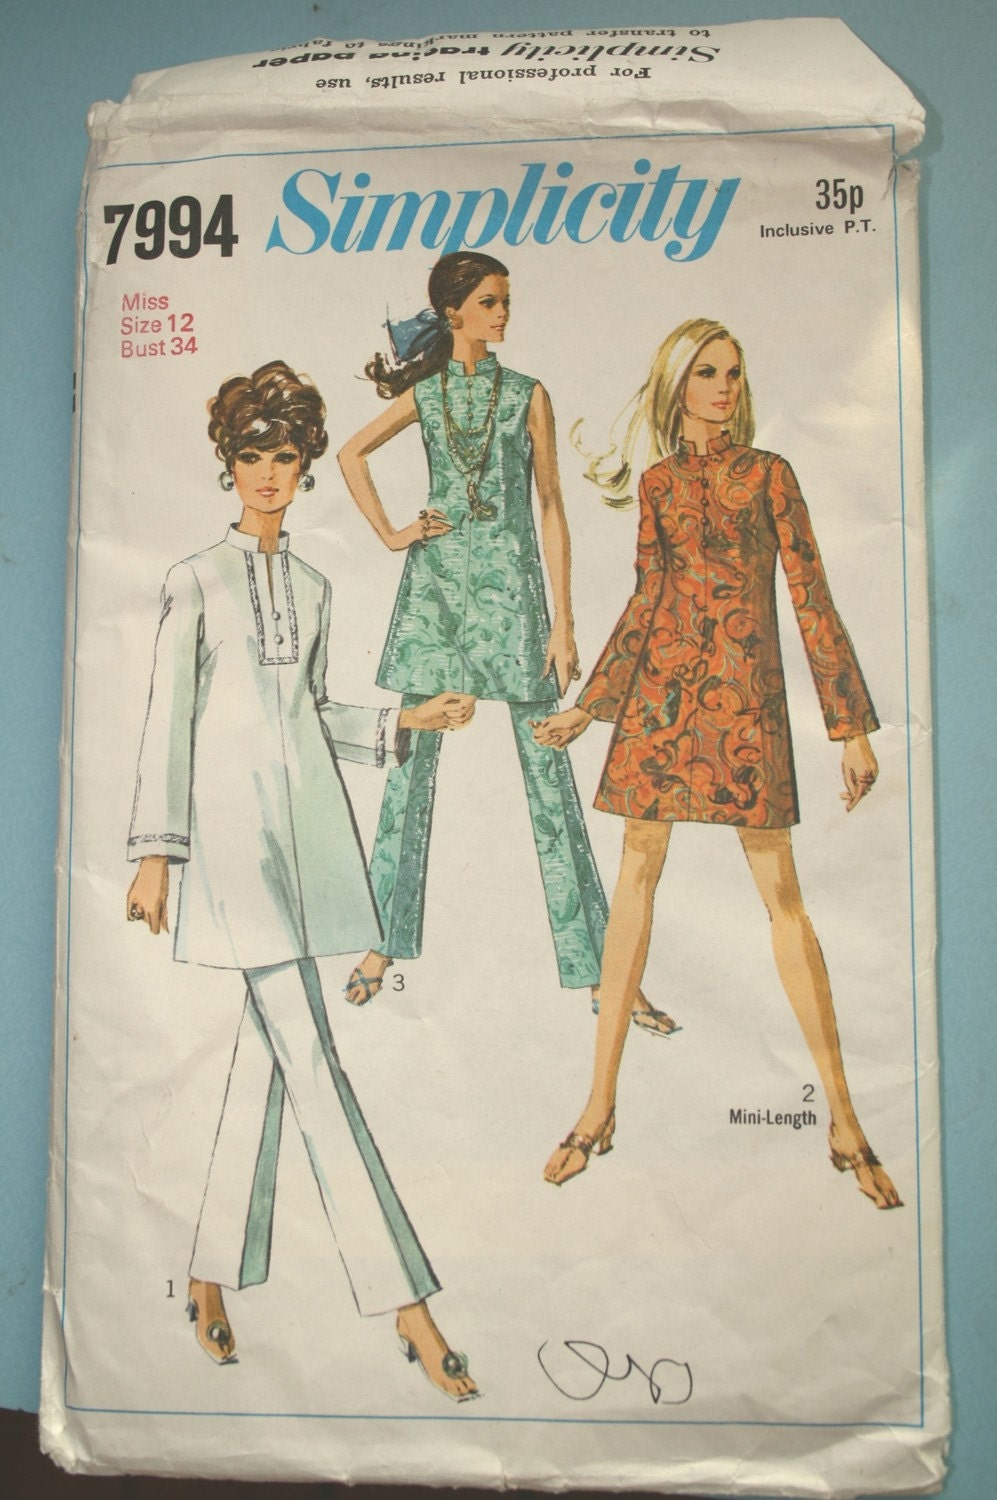 Vintage Simplicity sewing pattern for kaftan tunic dress and pants - unused